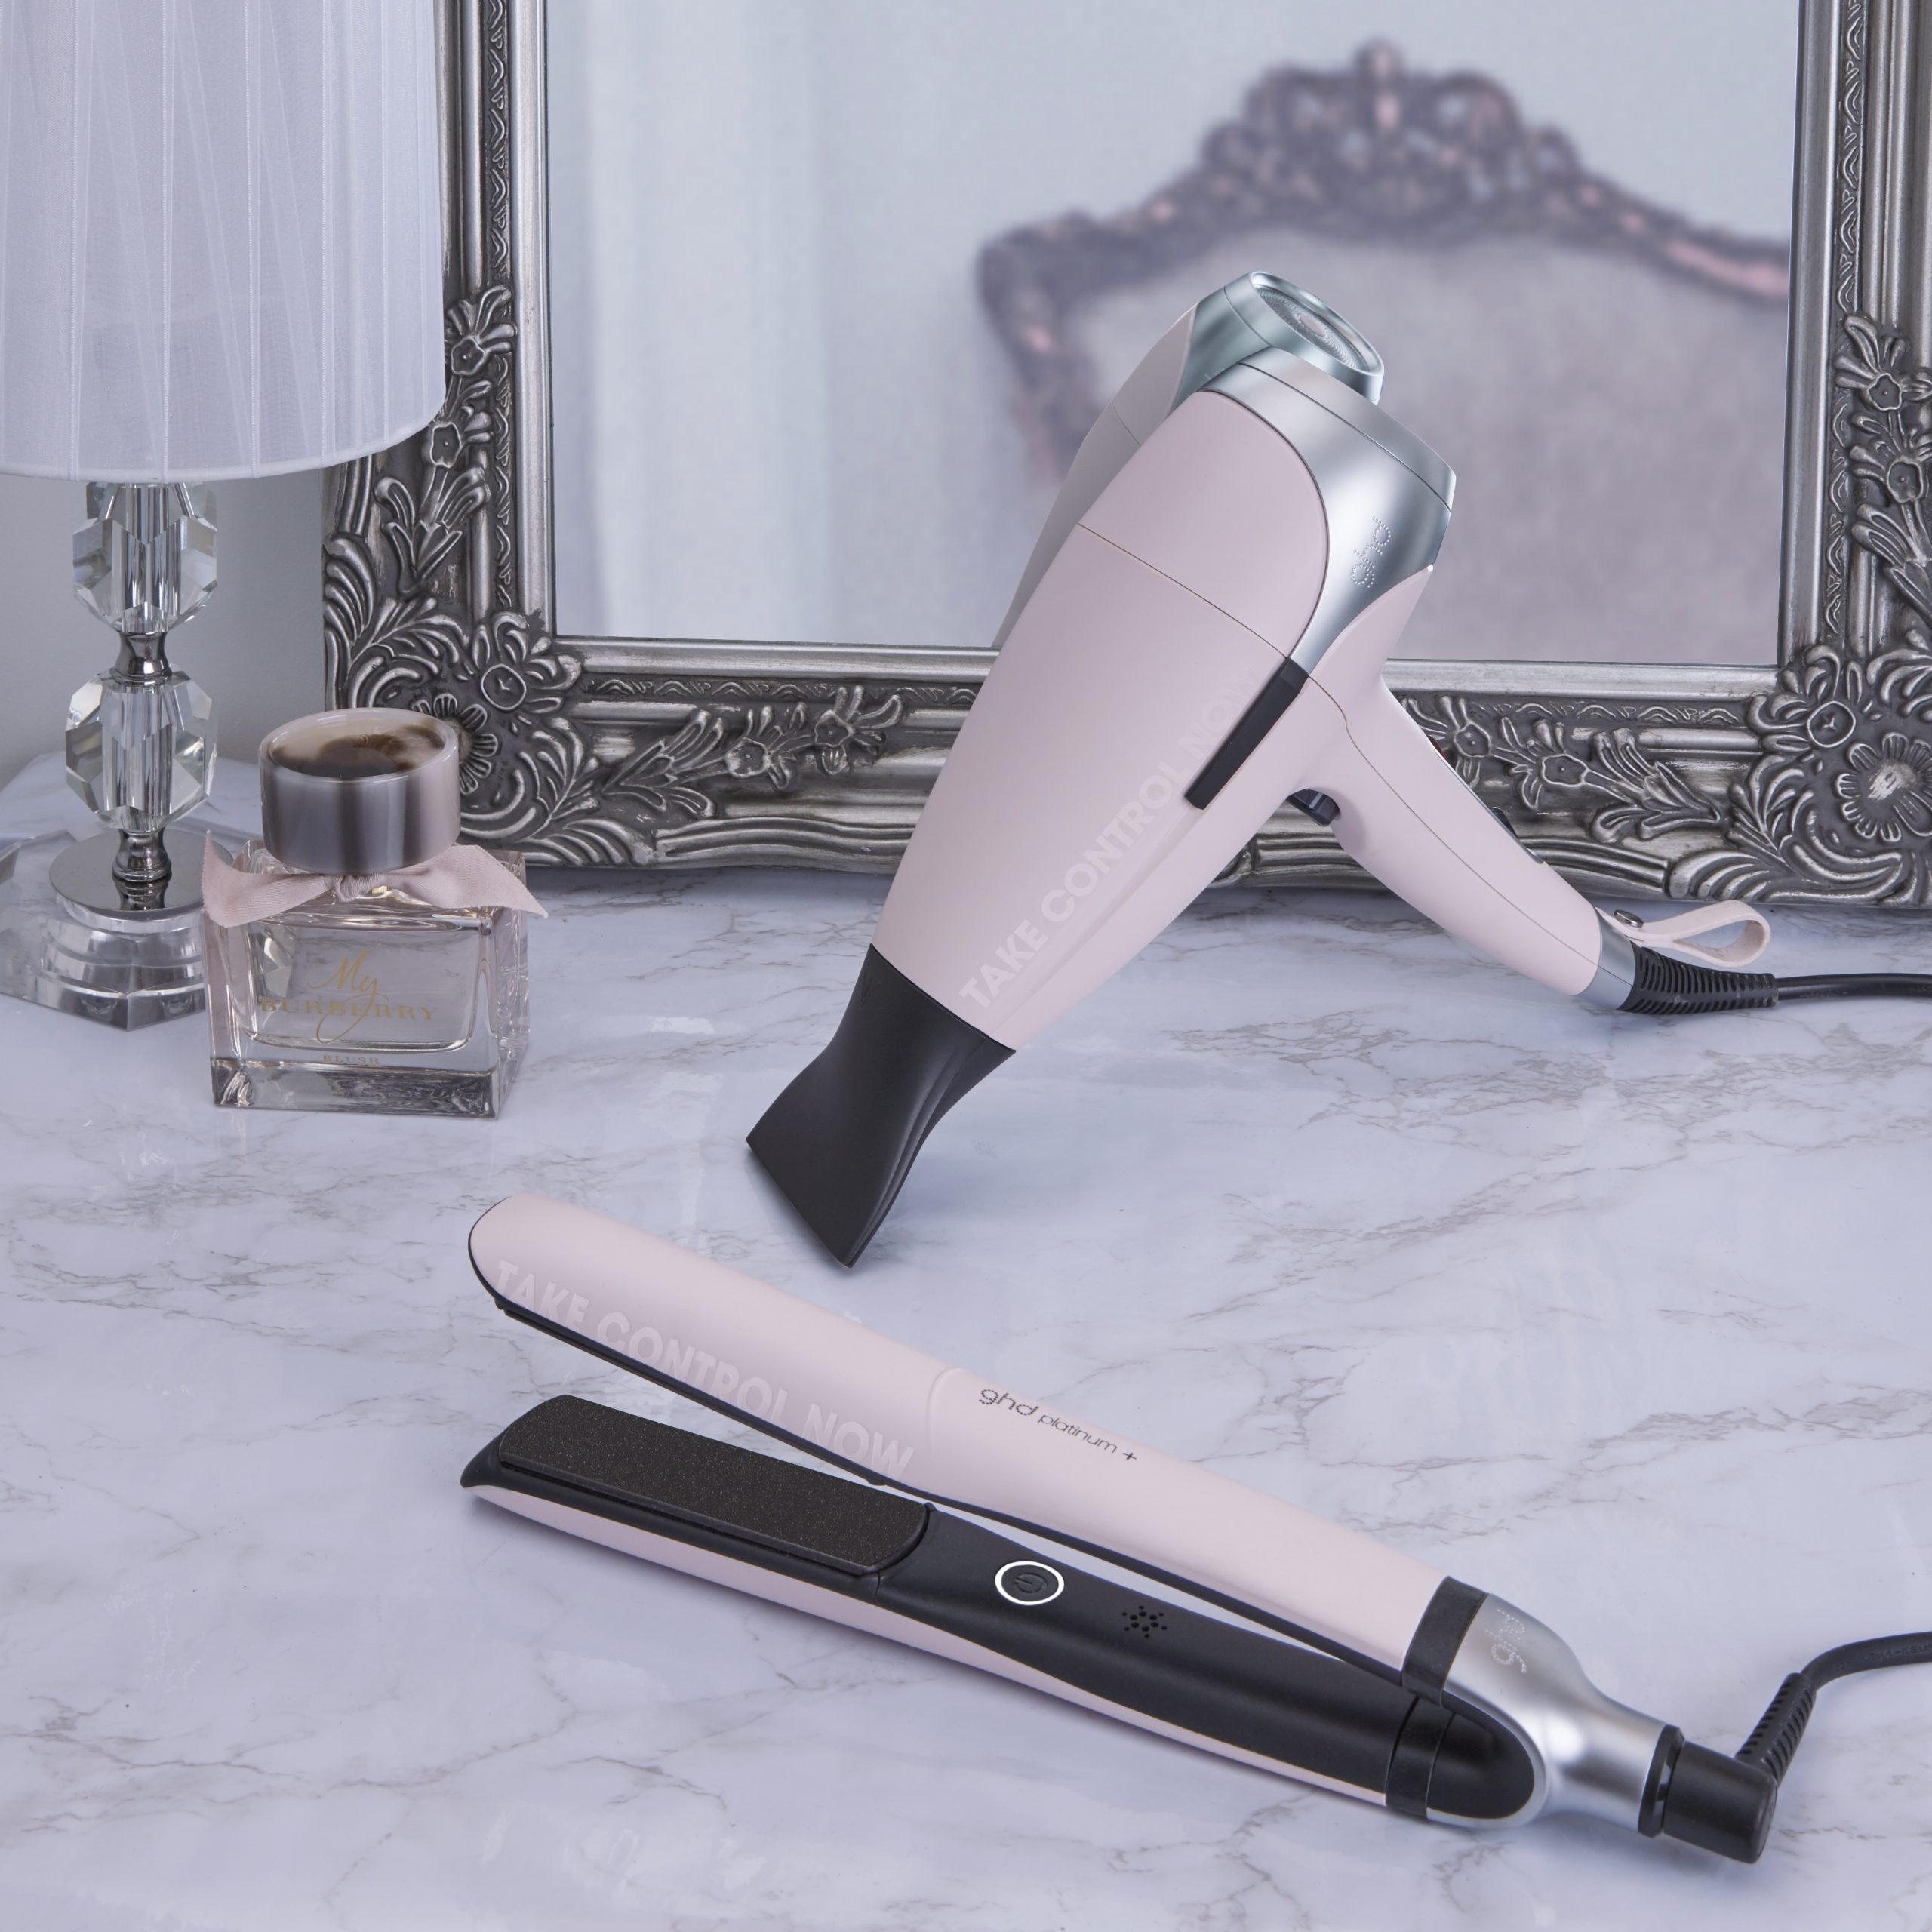 ghd Pink_platinum+ styler and helios_RRP $395 and $330